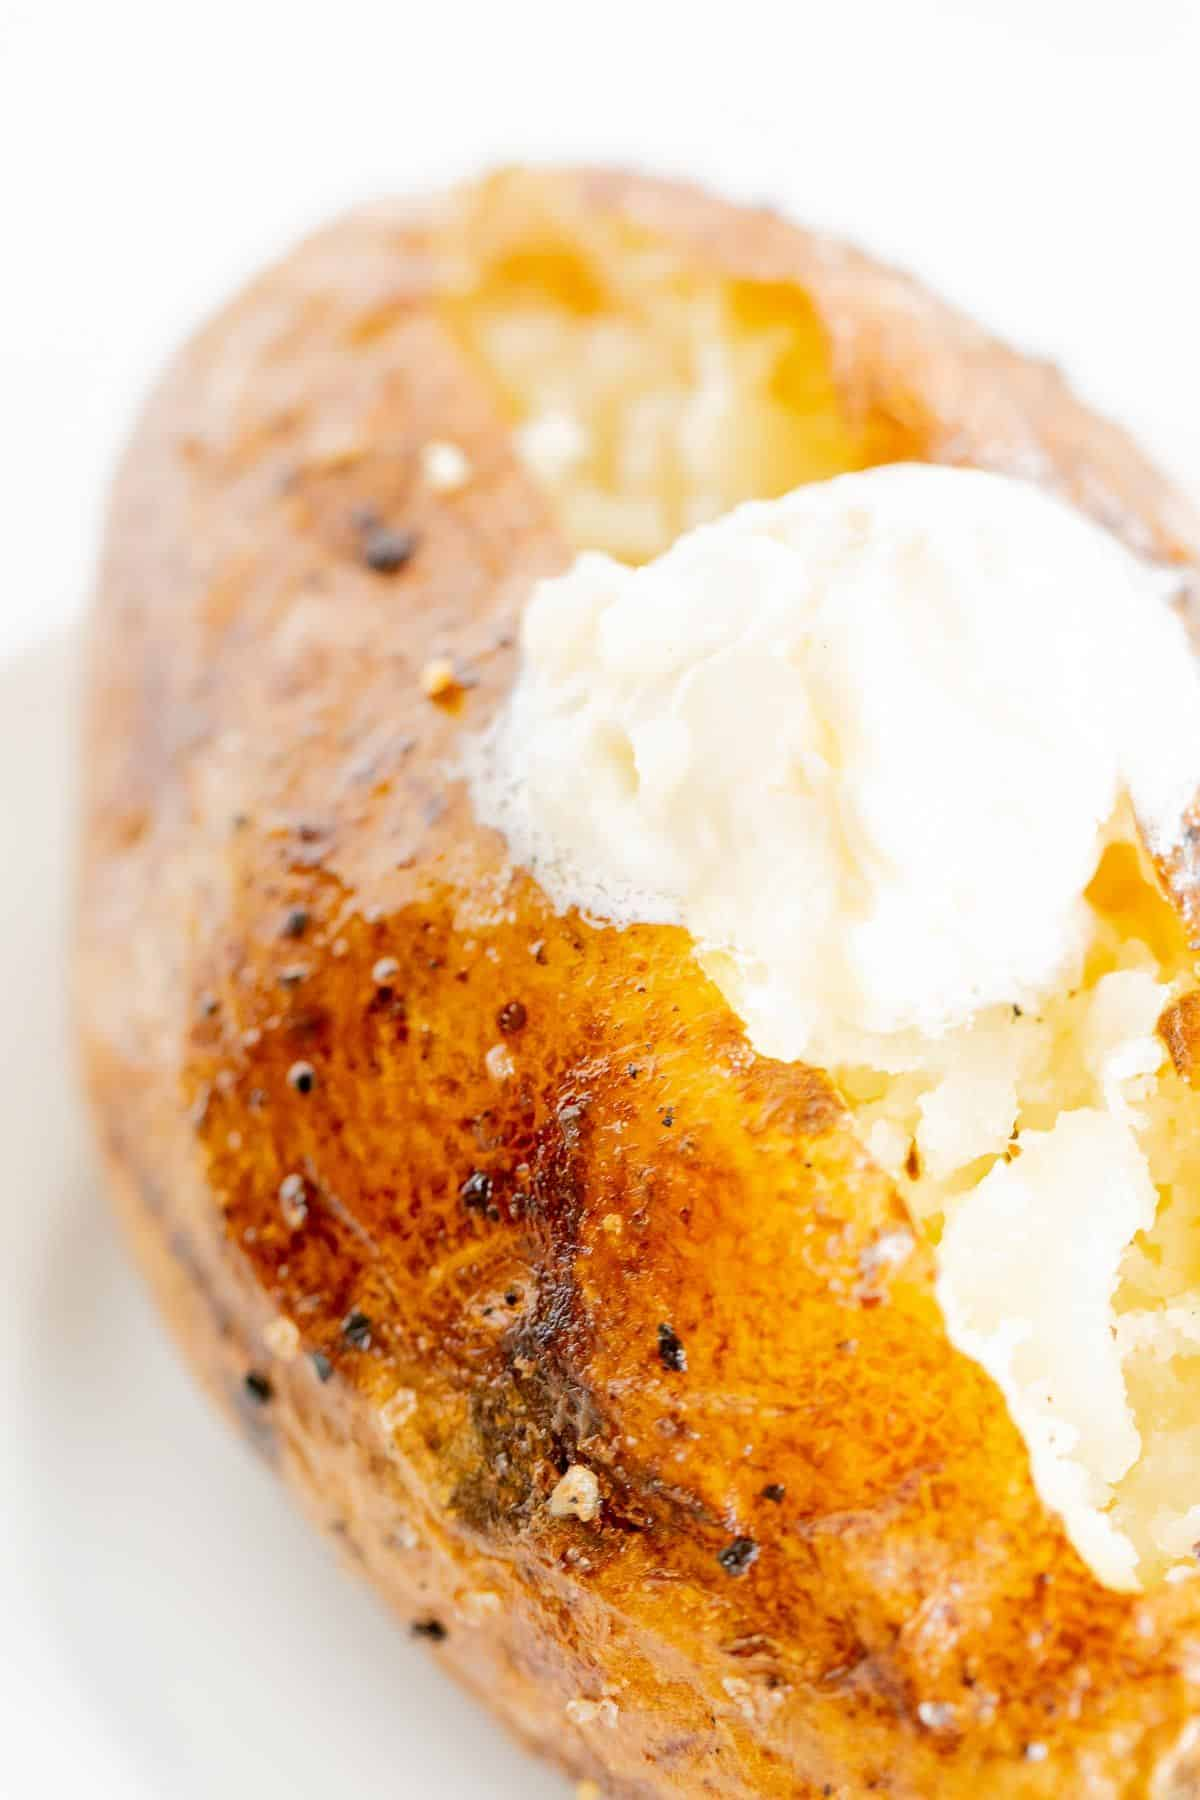 A single BBQ baked potato on a white plate, topped with butter and sour cream.